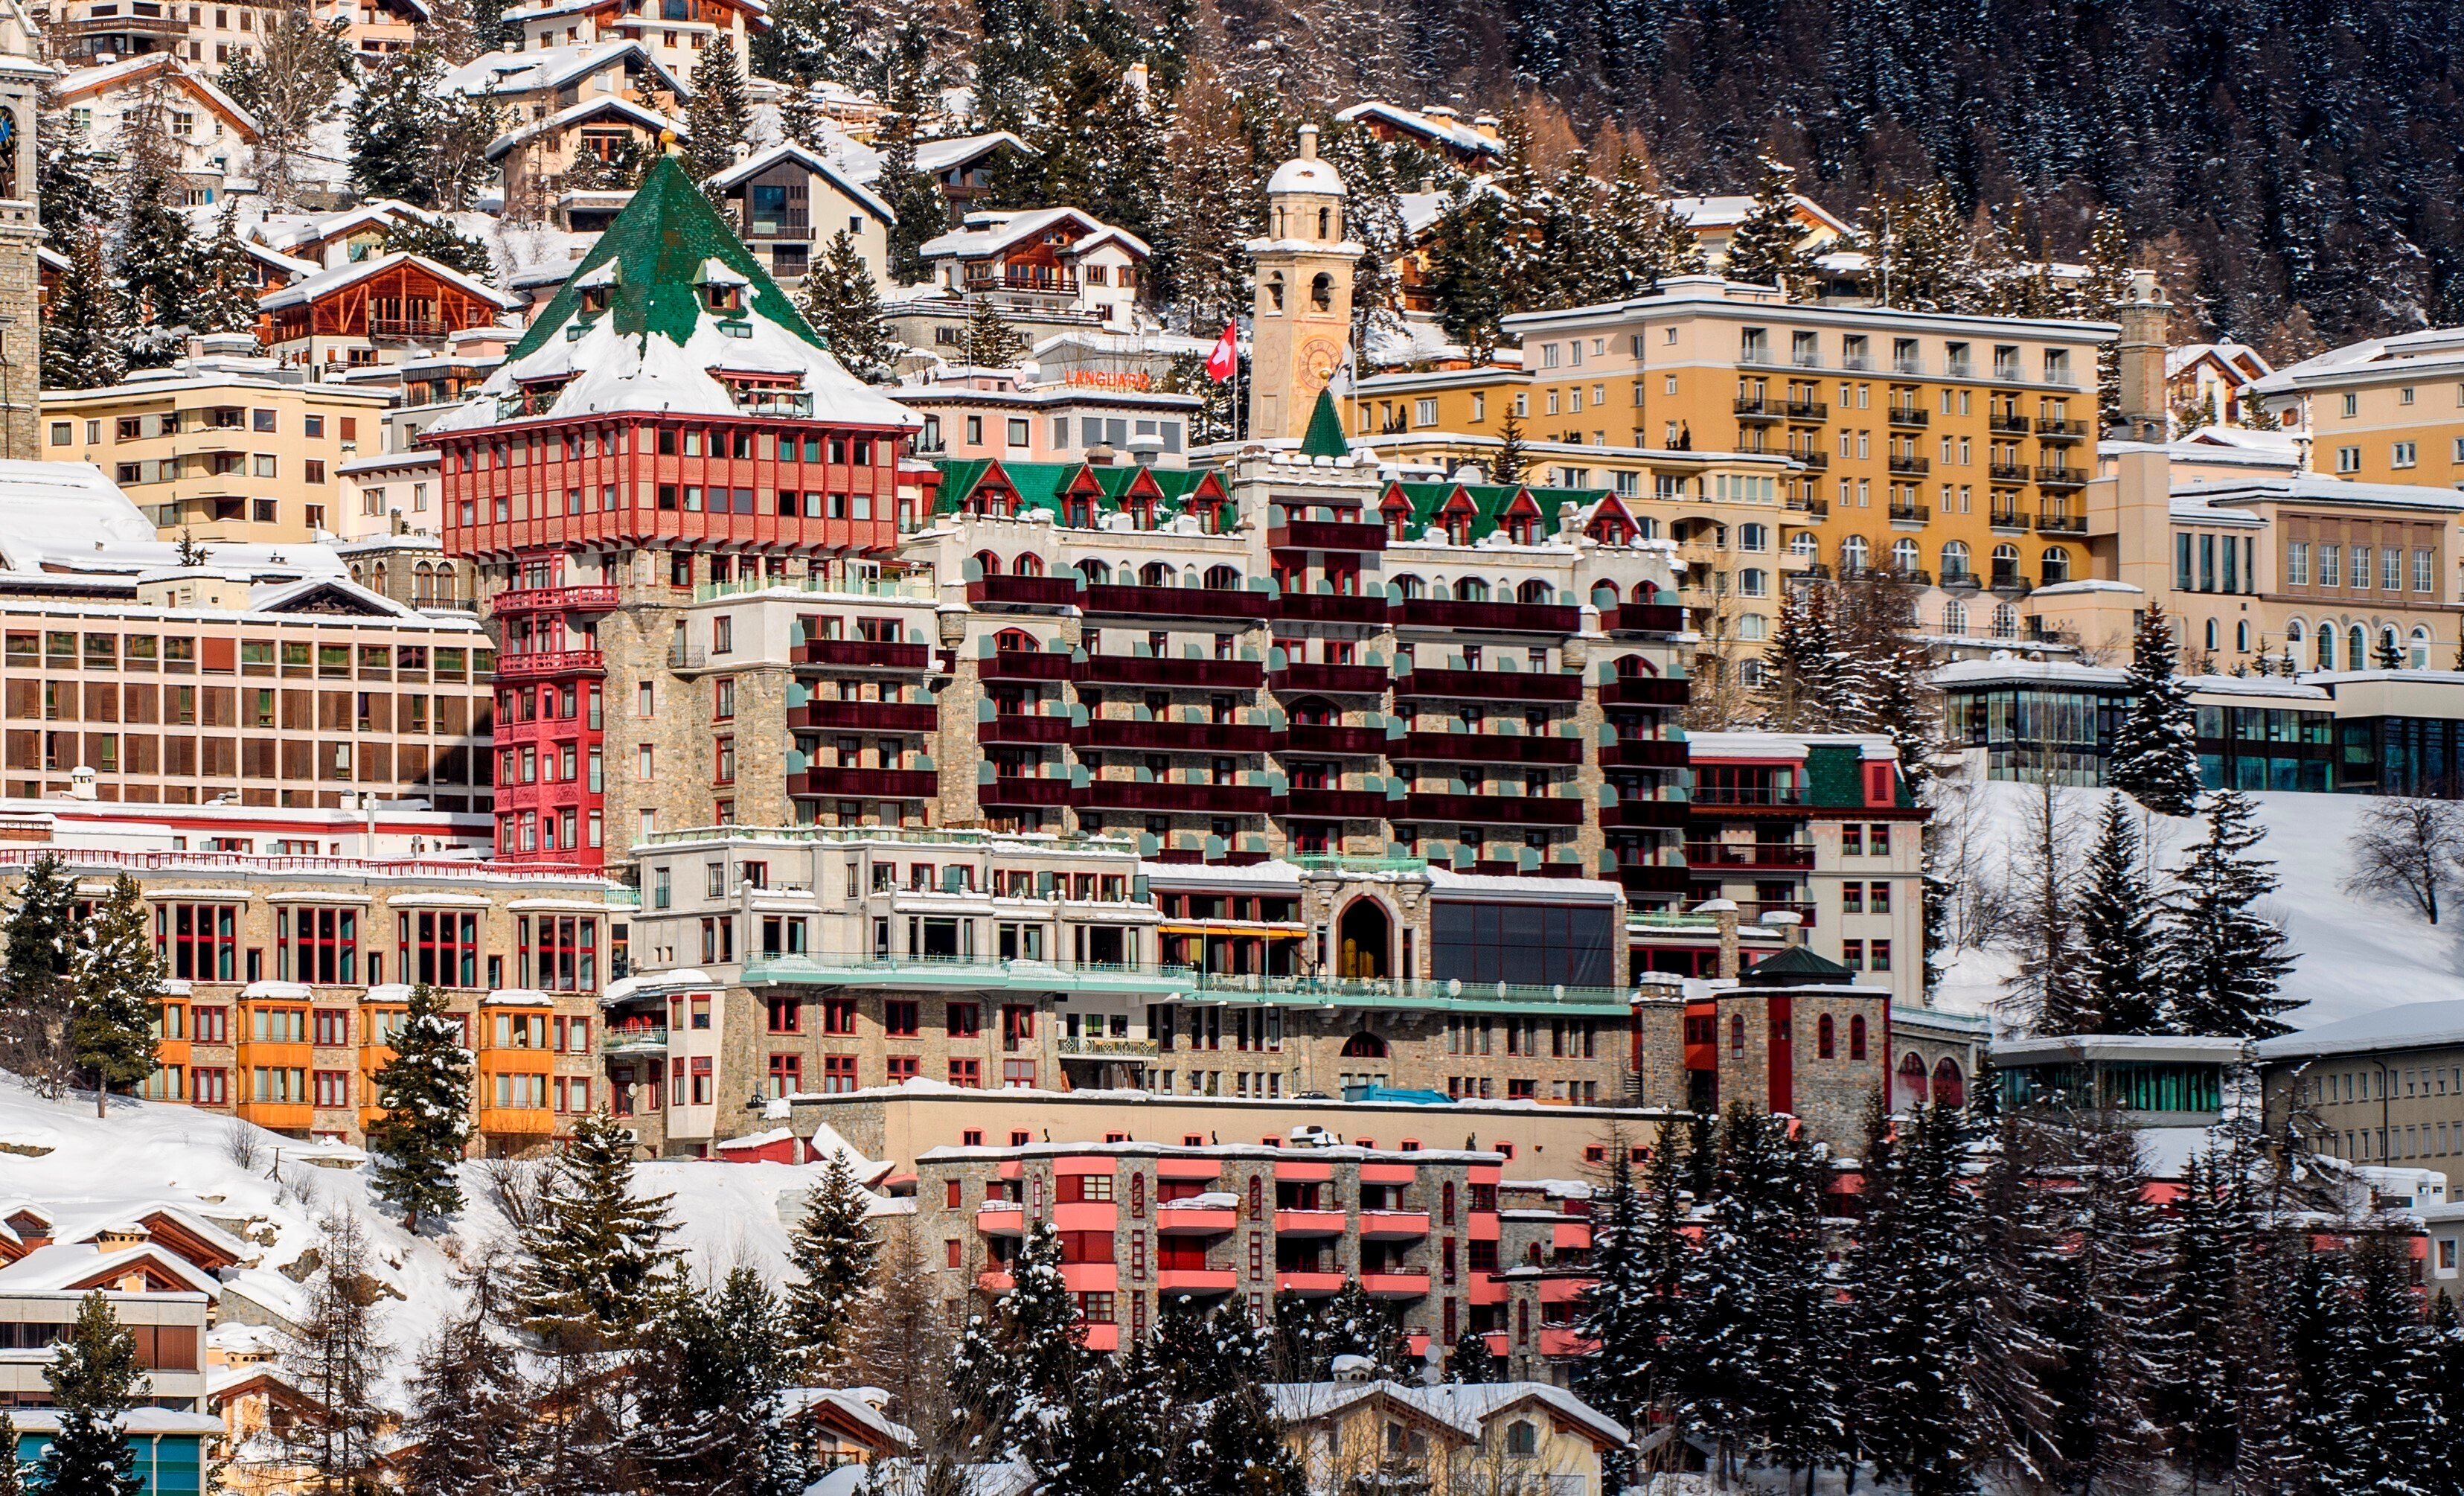 Hotels in quarantine after Covid variant outbreak in upmarket Swiss ski resort